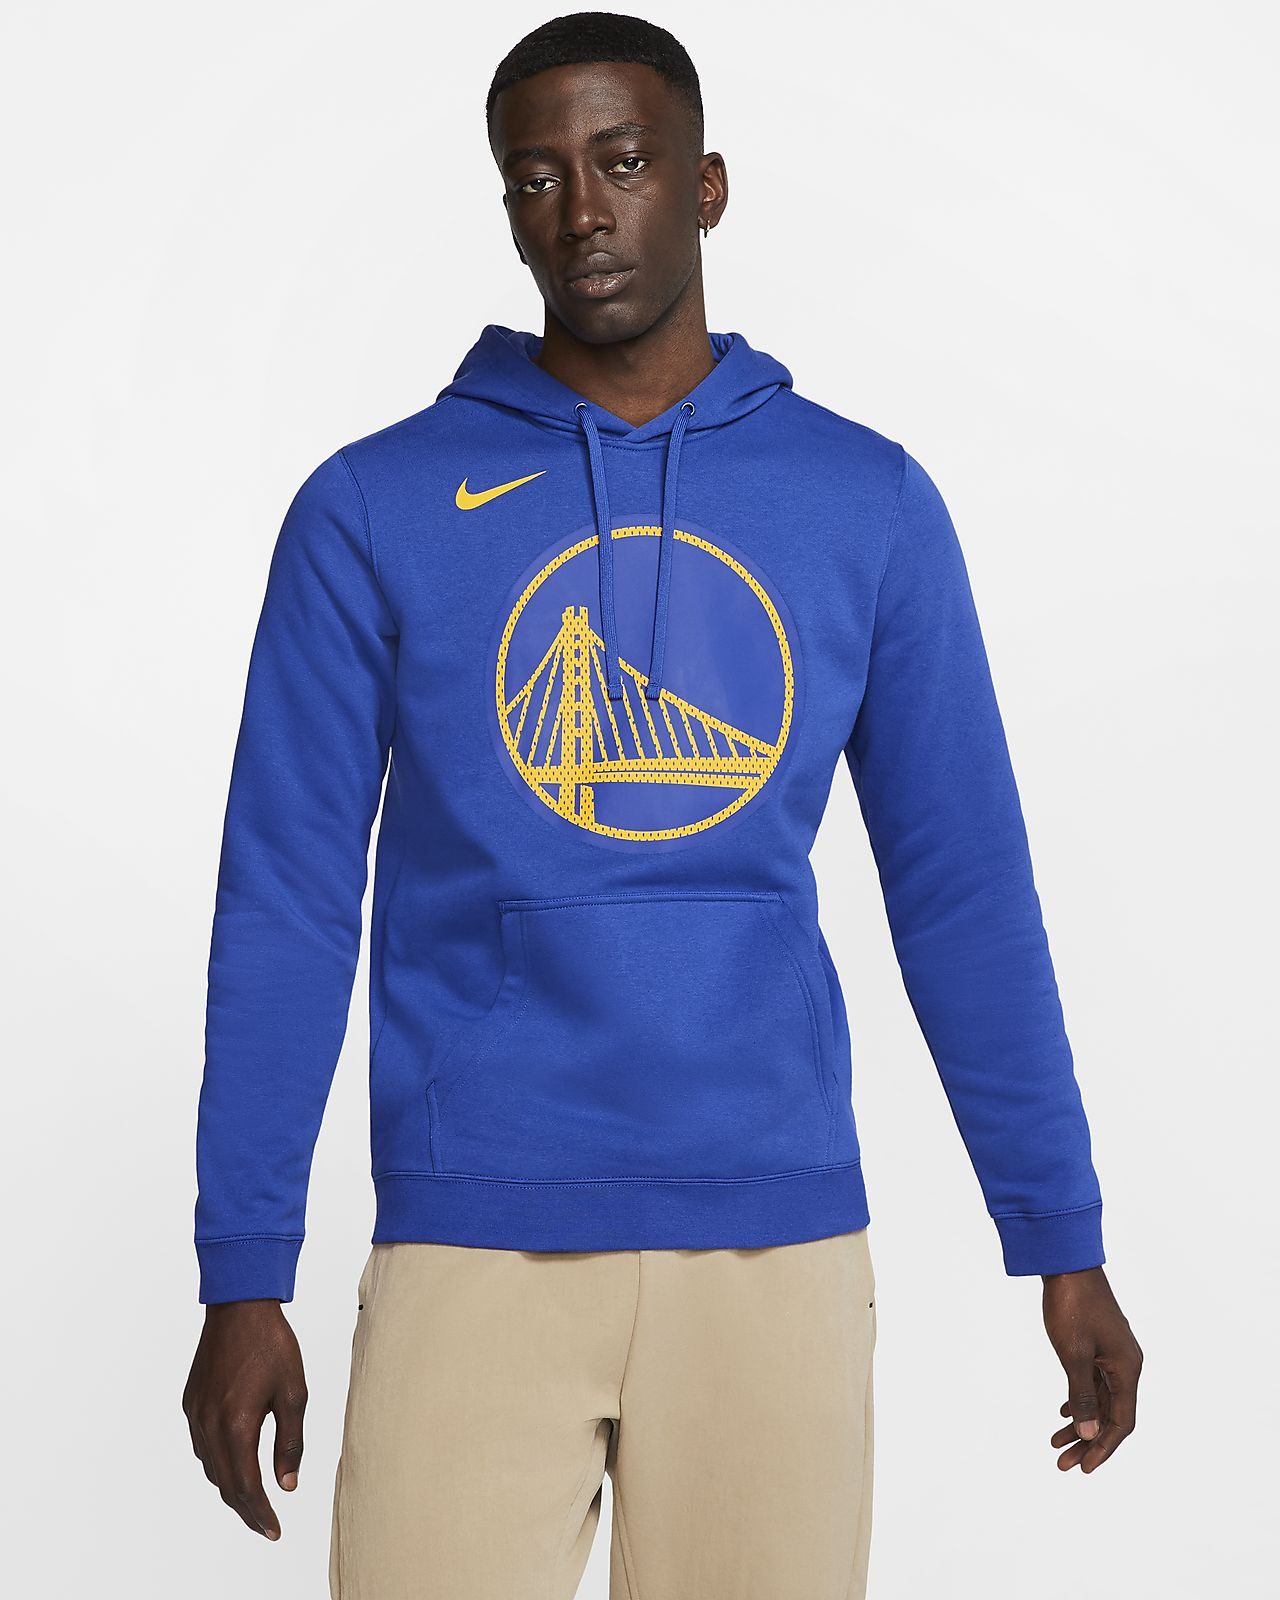 Golden State Warriors Logo Men's Nike NBA Hoodie